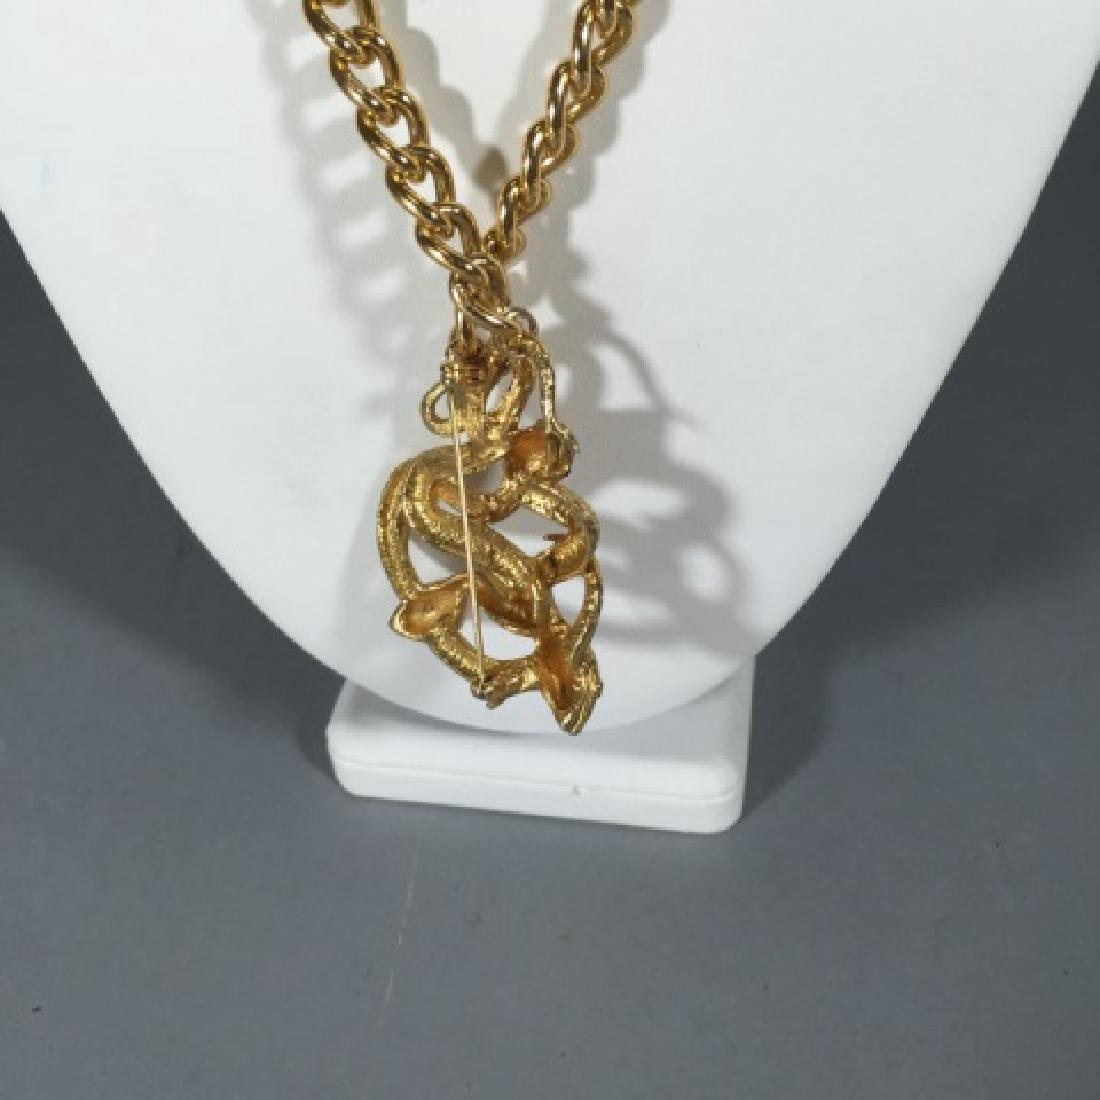 Victorian Style Gilt Metal Entwined Snake Necklace - 2